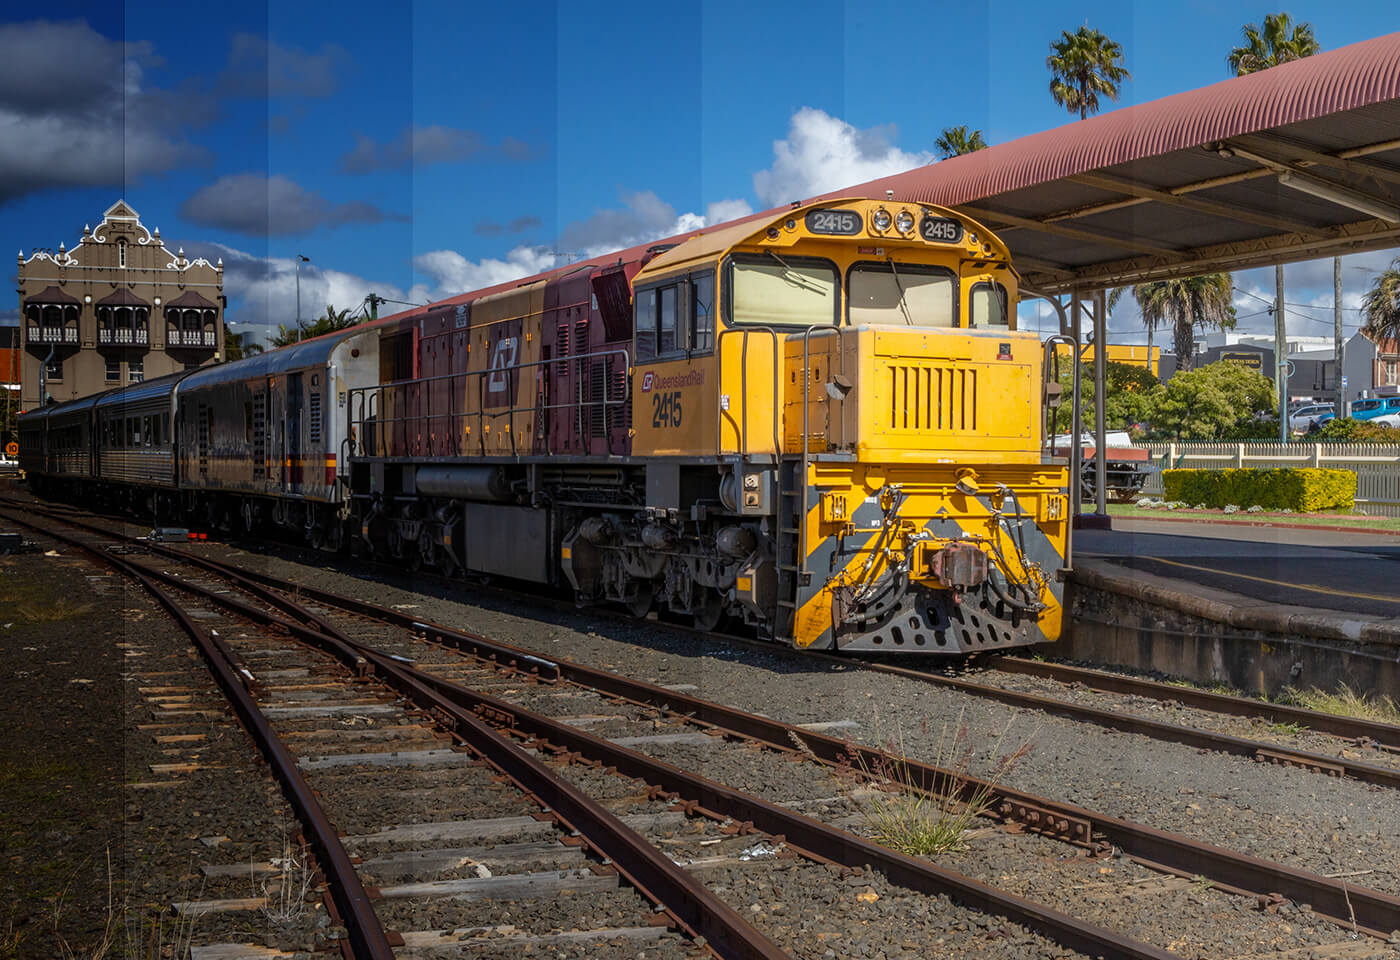 Timelapse photo of a train by Greg Sullavan